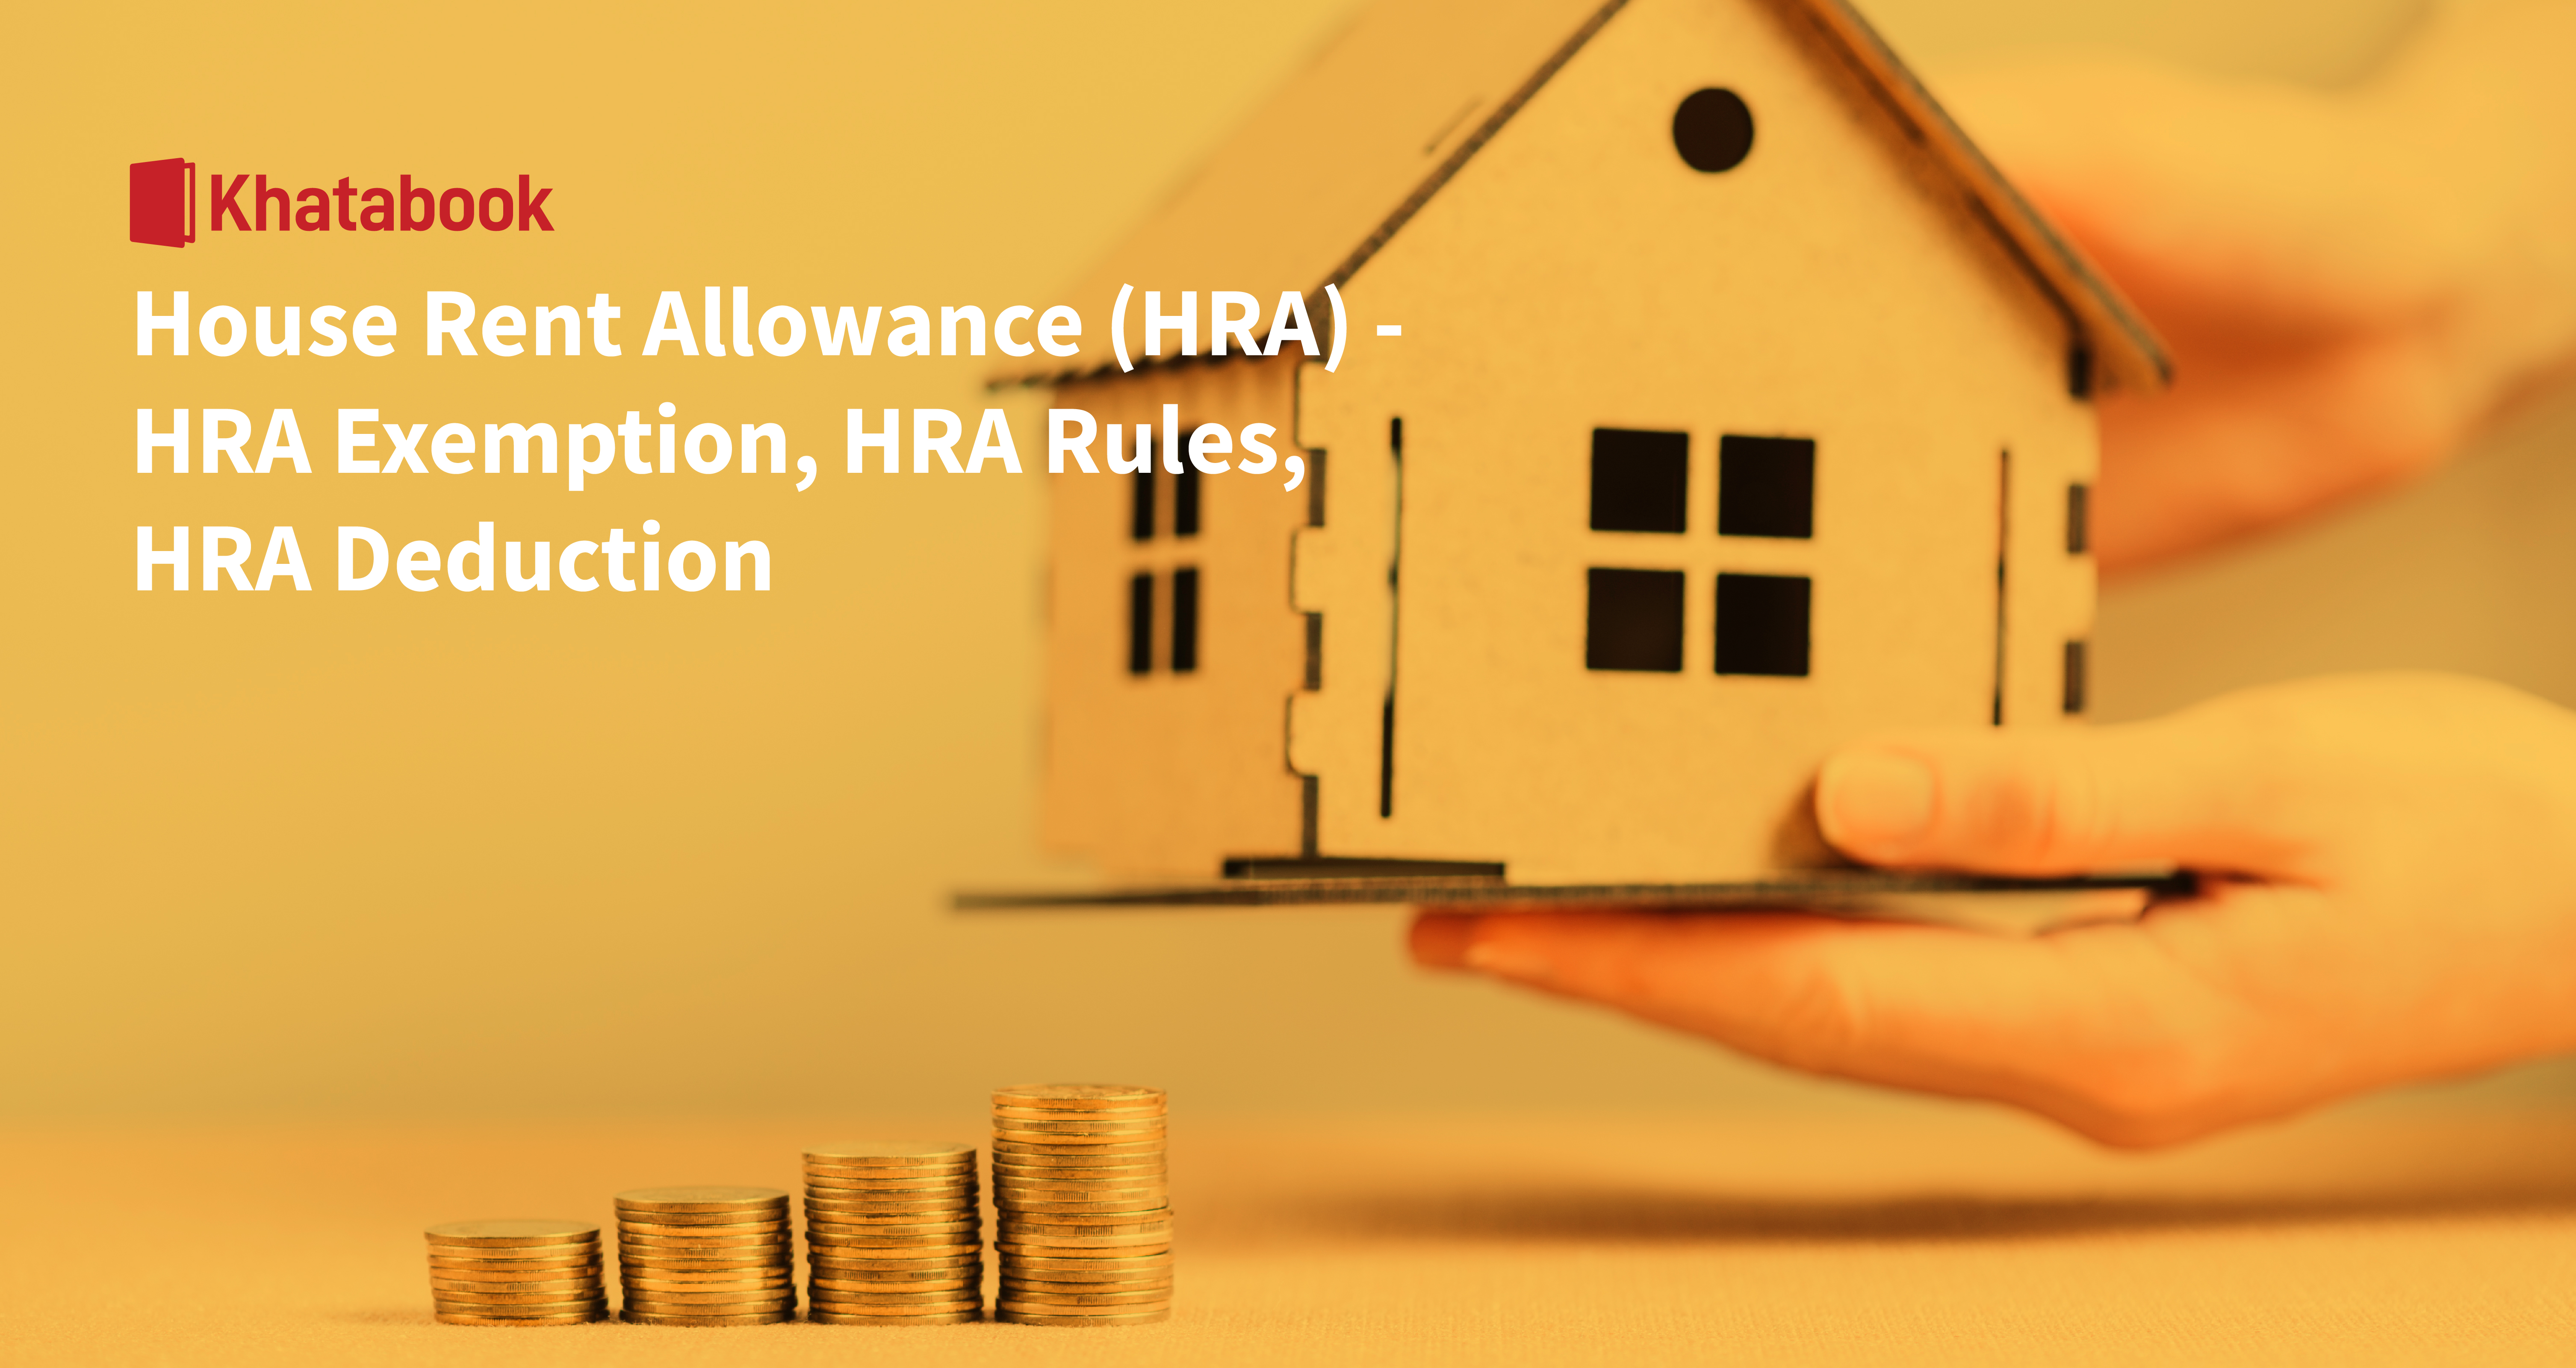 House Rent Allowance (HRA)- Its Exemption, Calculation and Rules